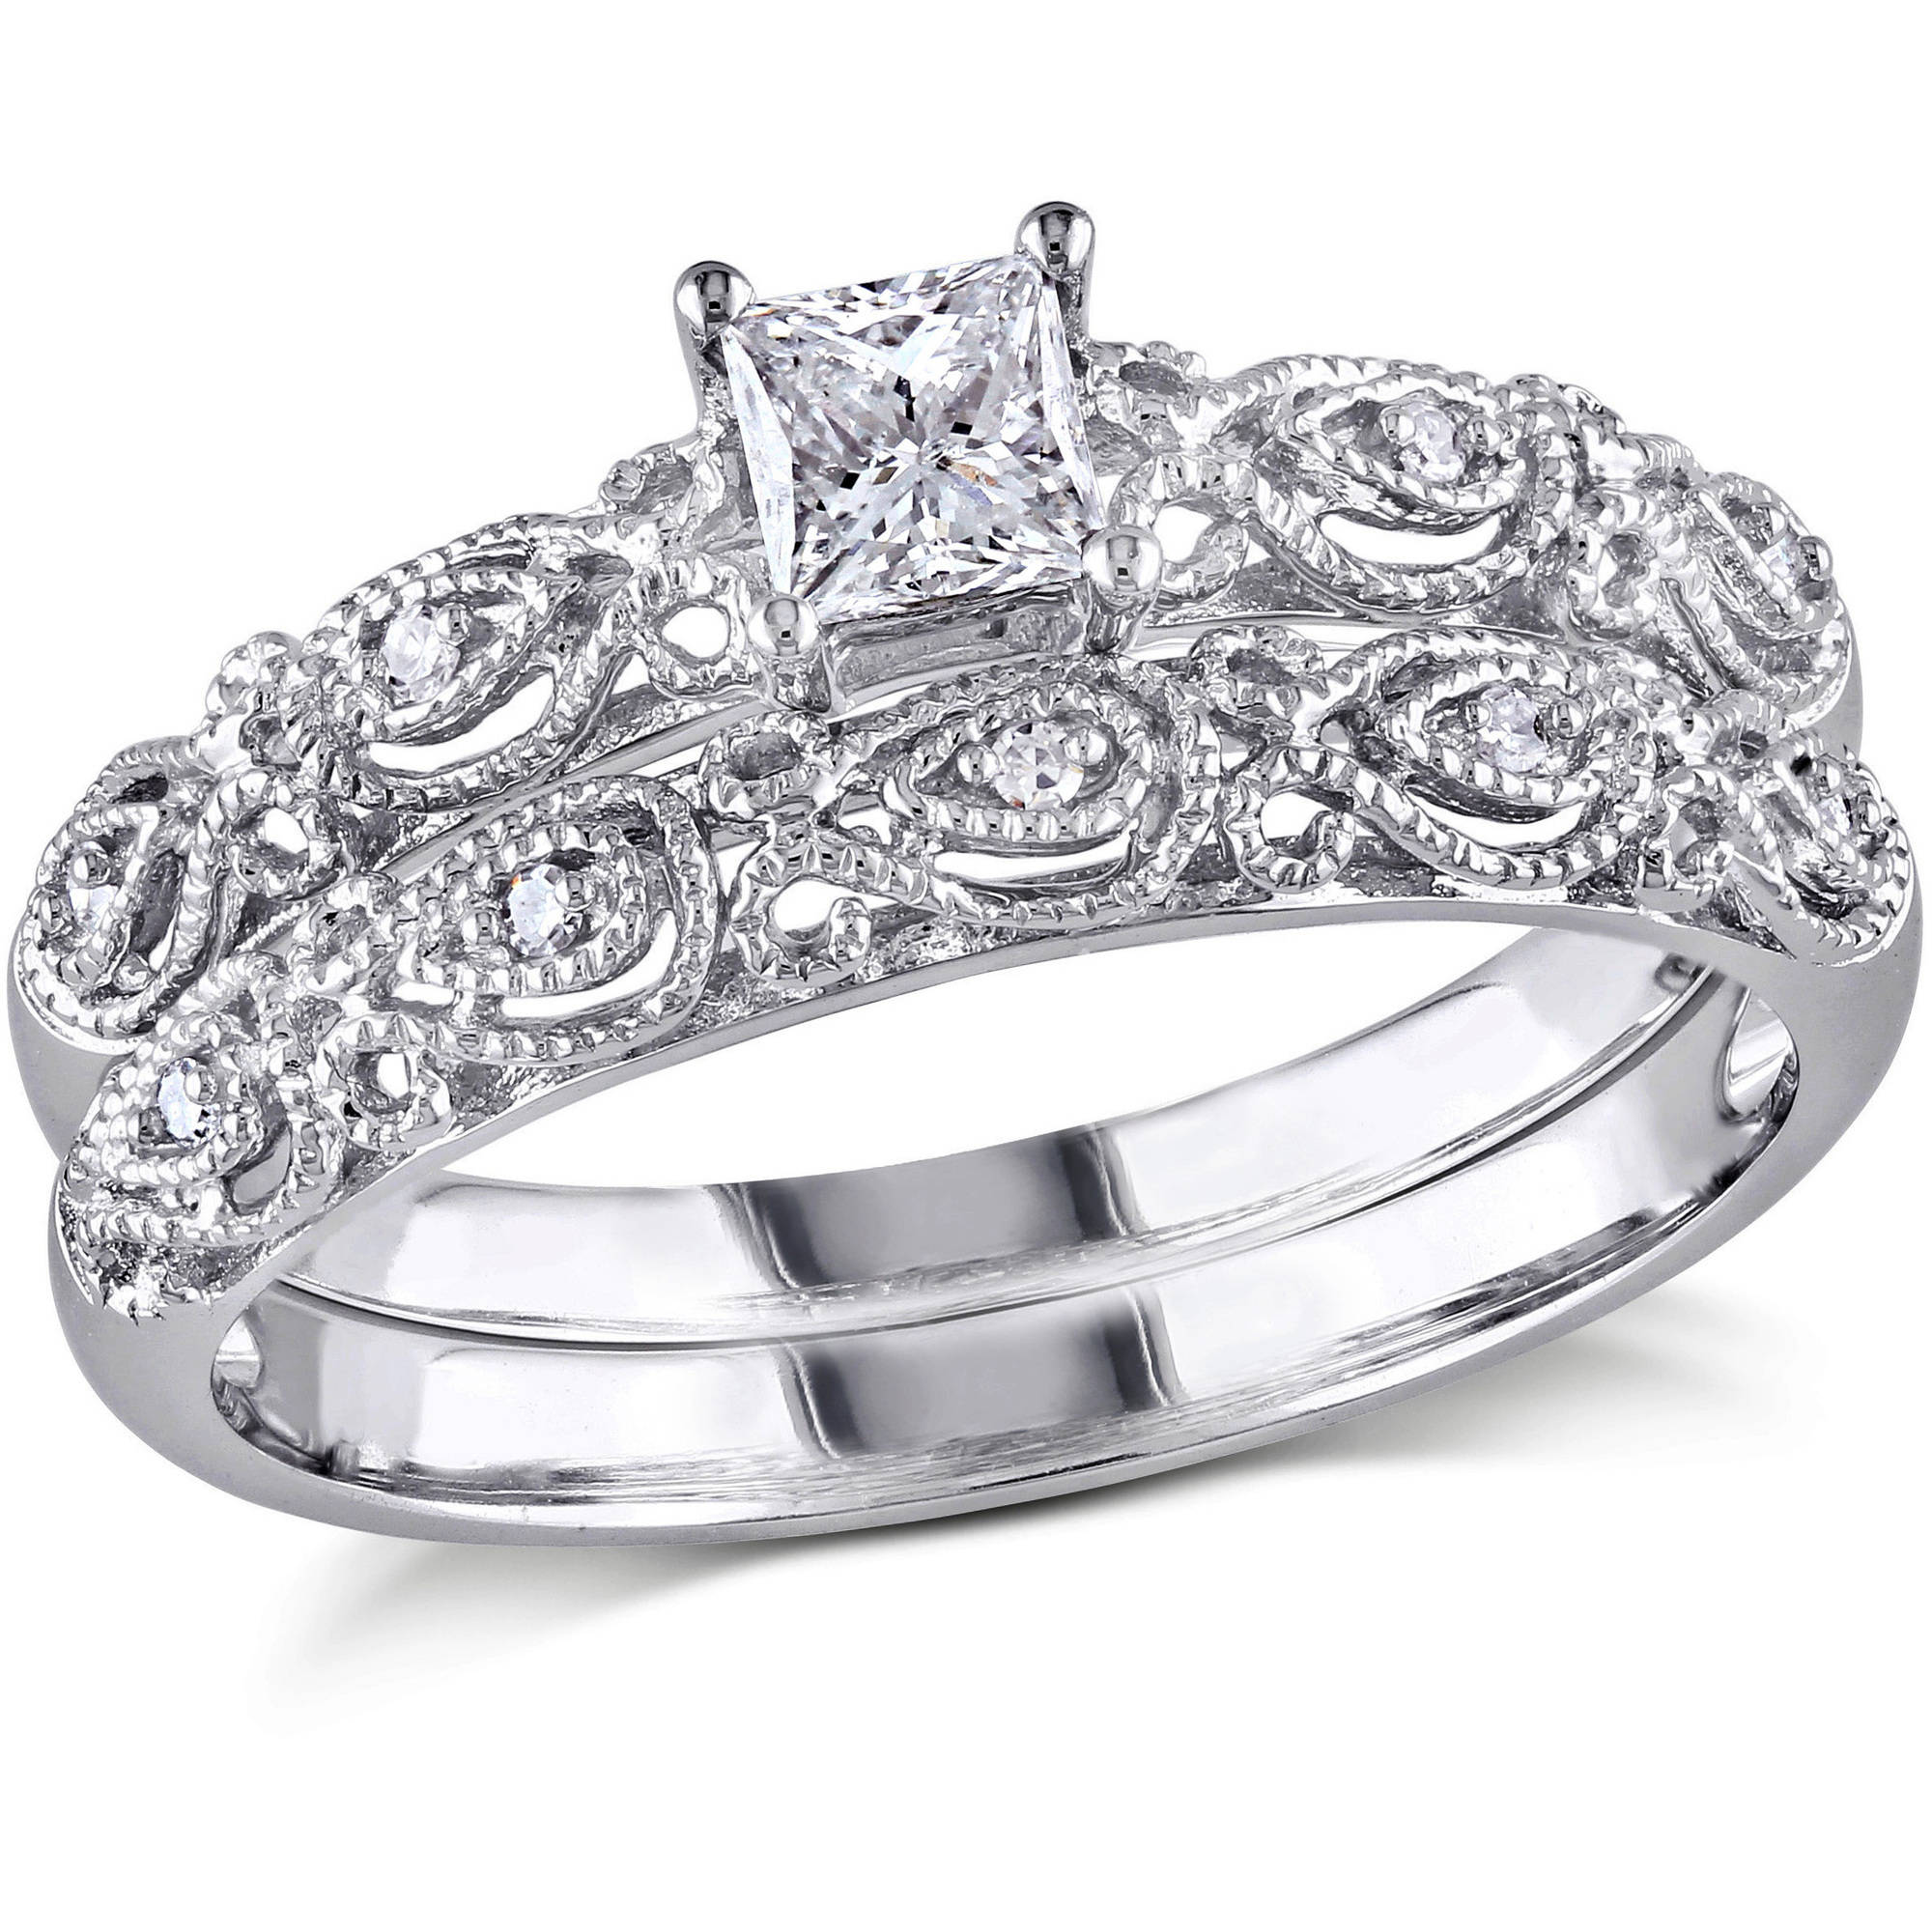 Miabella 1/3 Carat Princess and Round-Cut Diamond 10kt White Gold Bridal Set